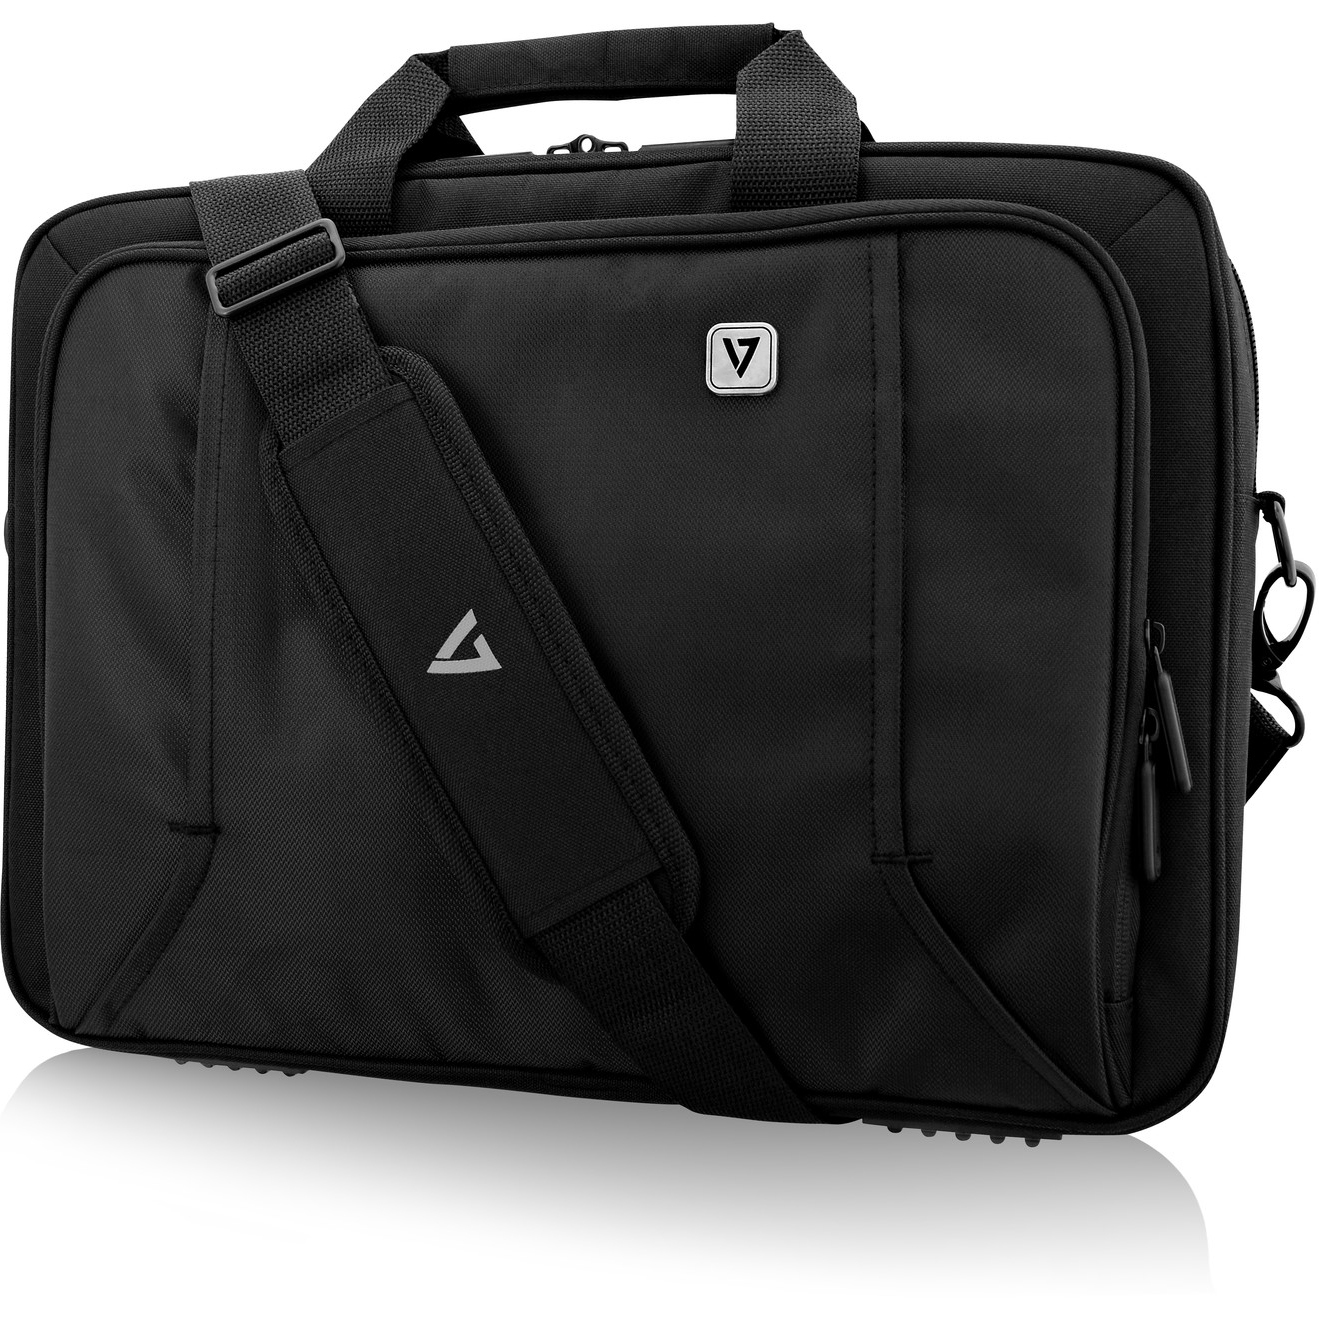 V7 PROFESSIONAL CTP16-BLK-9E Carrying Case for 39.6 cm 15.6inch Notebook - Black